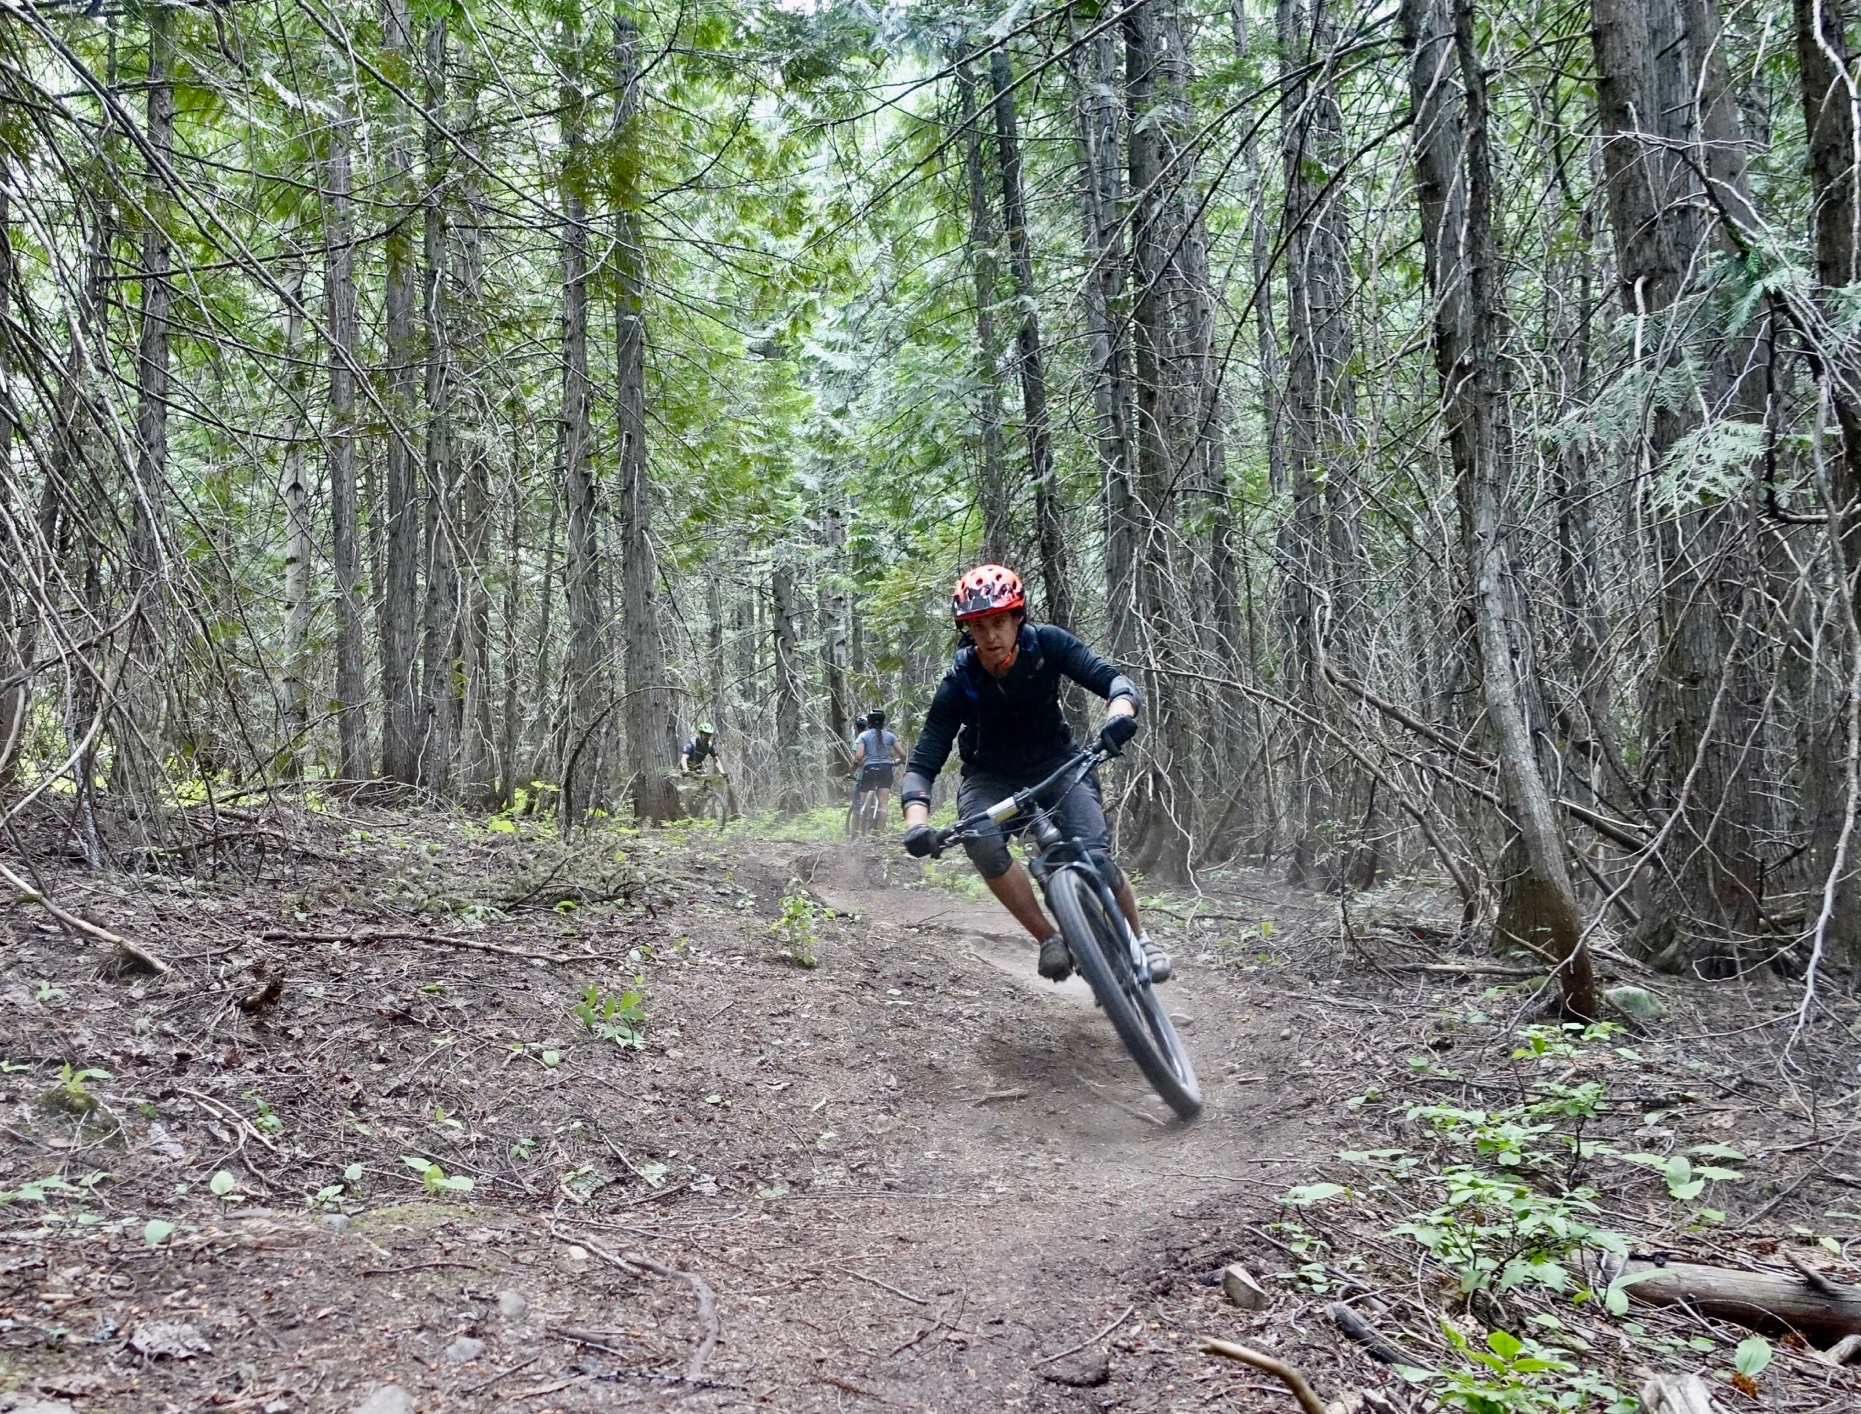 An Introduction To The Epic Mtb Destination Of Fernie Bc Page 2